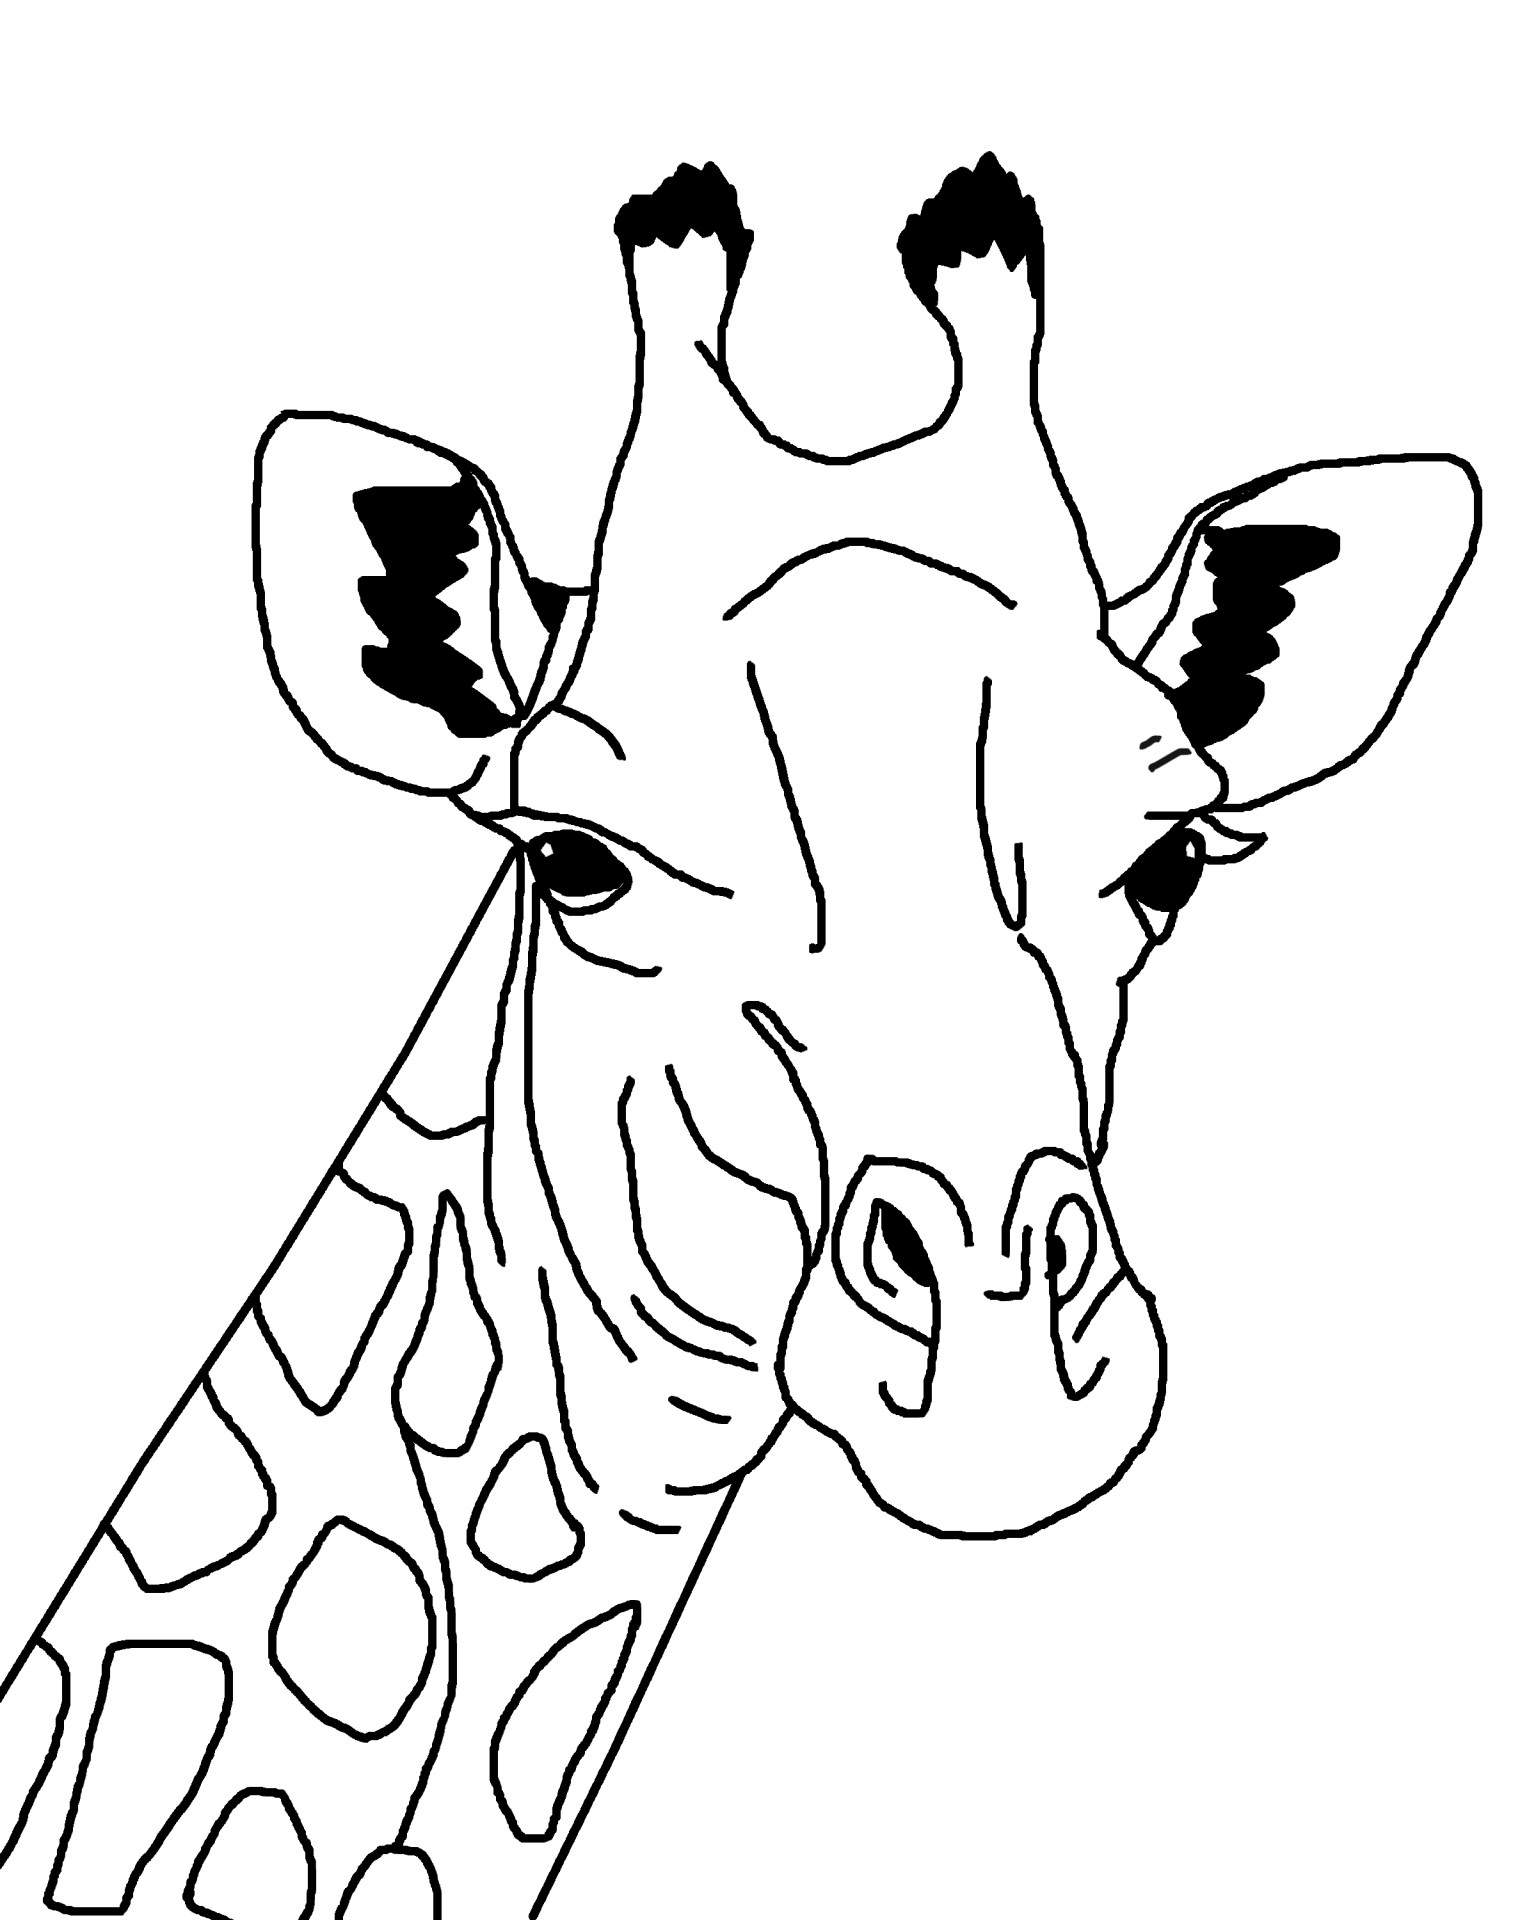 giraffe coloring page - Giraffes Coloring Pages